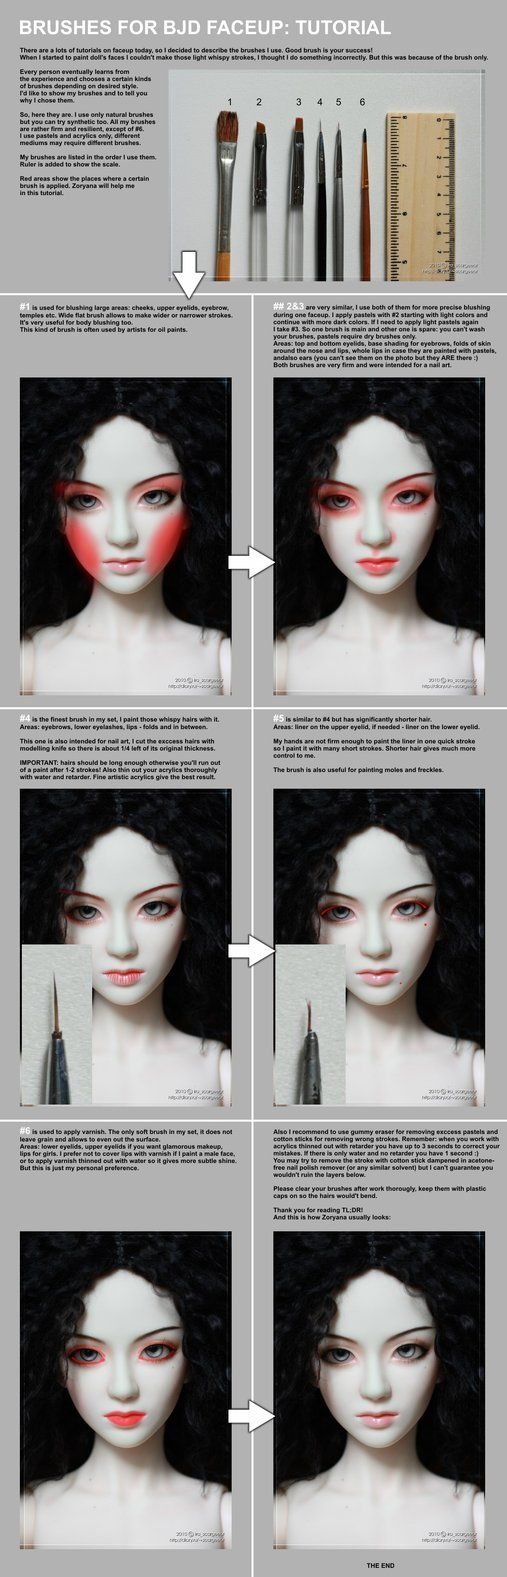 Brushes for BJD faceup tutorial by ~scargeear on deviantART